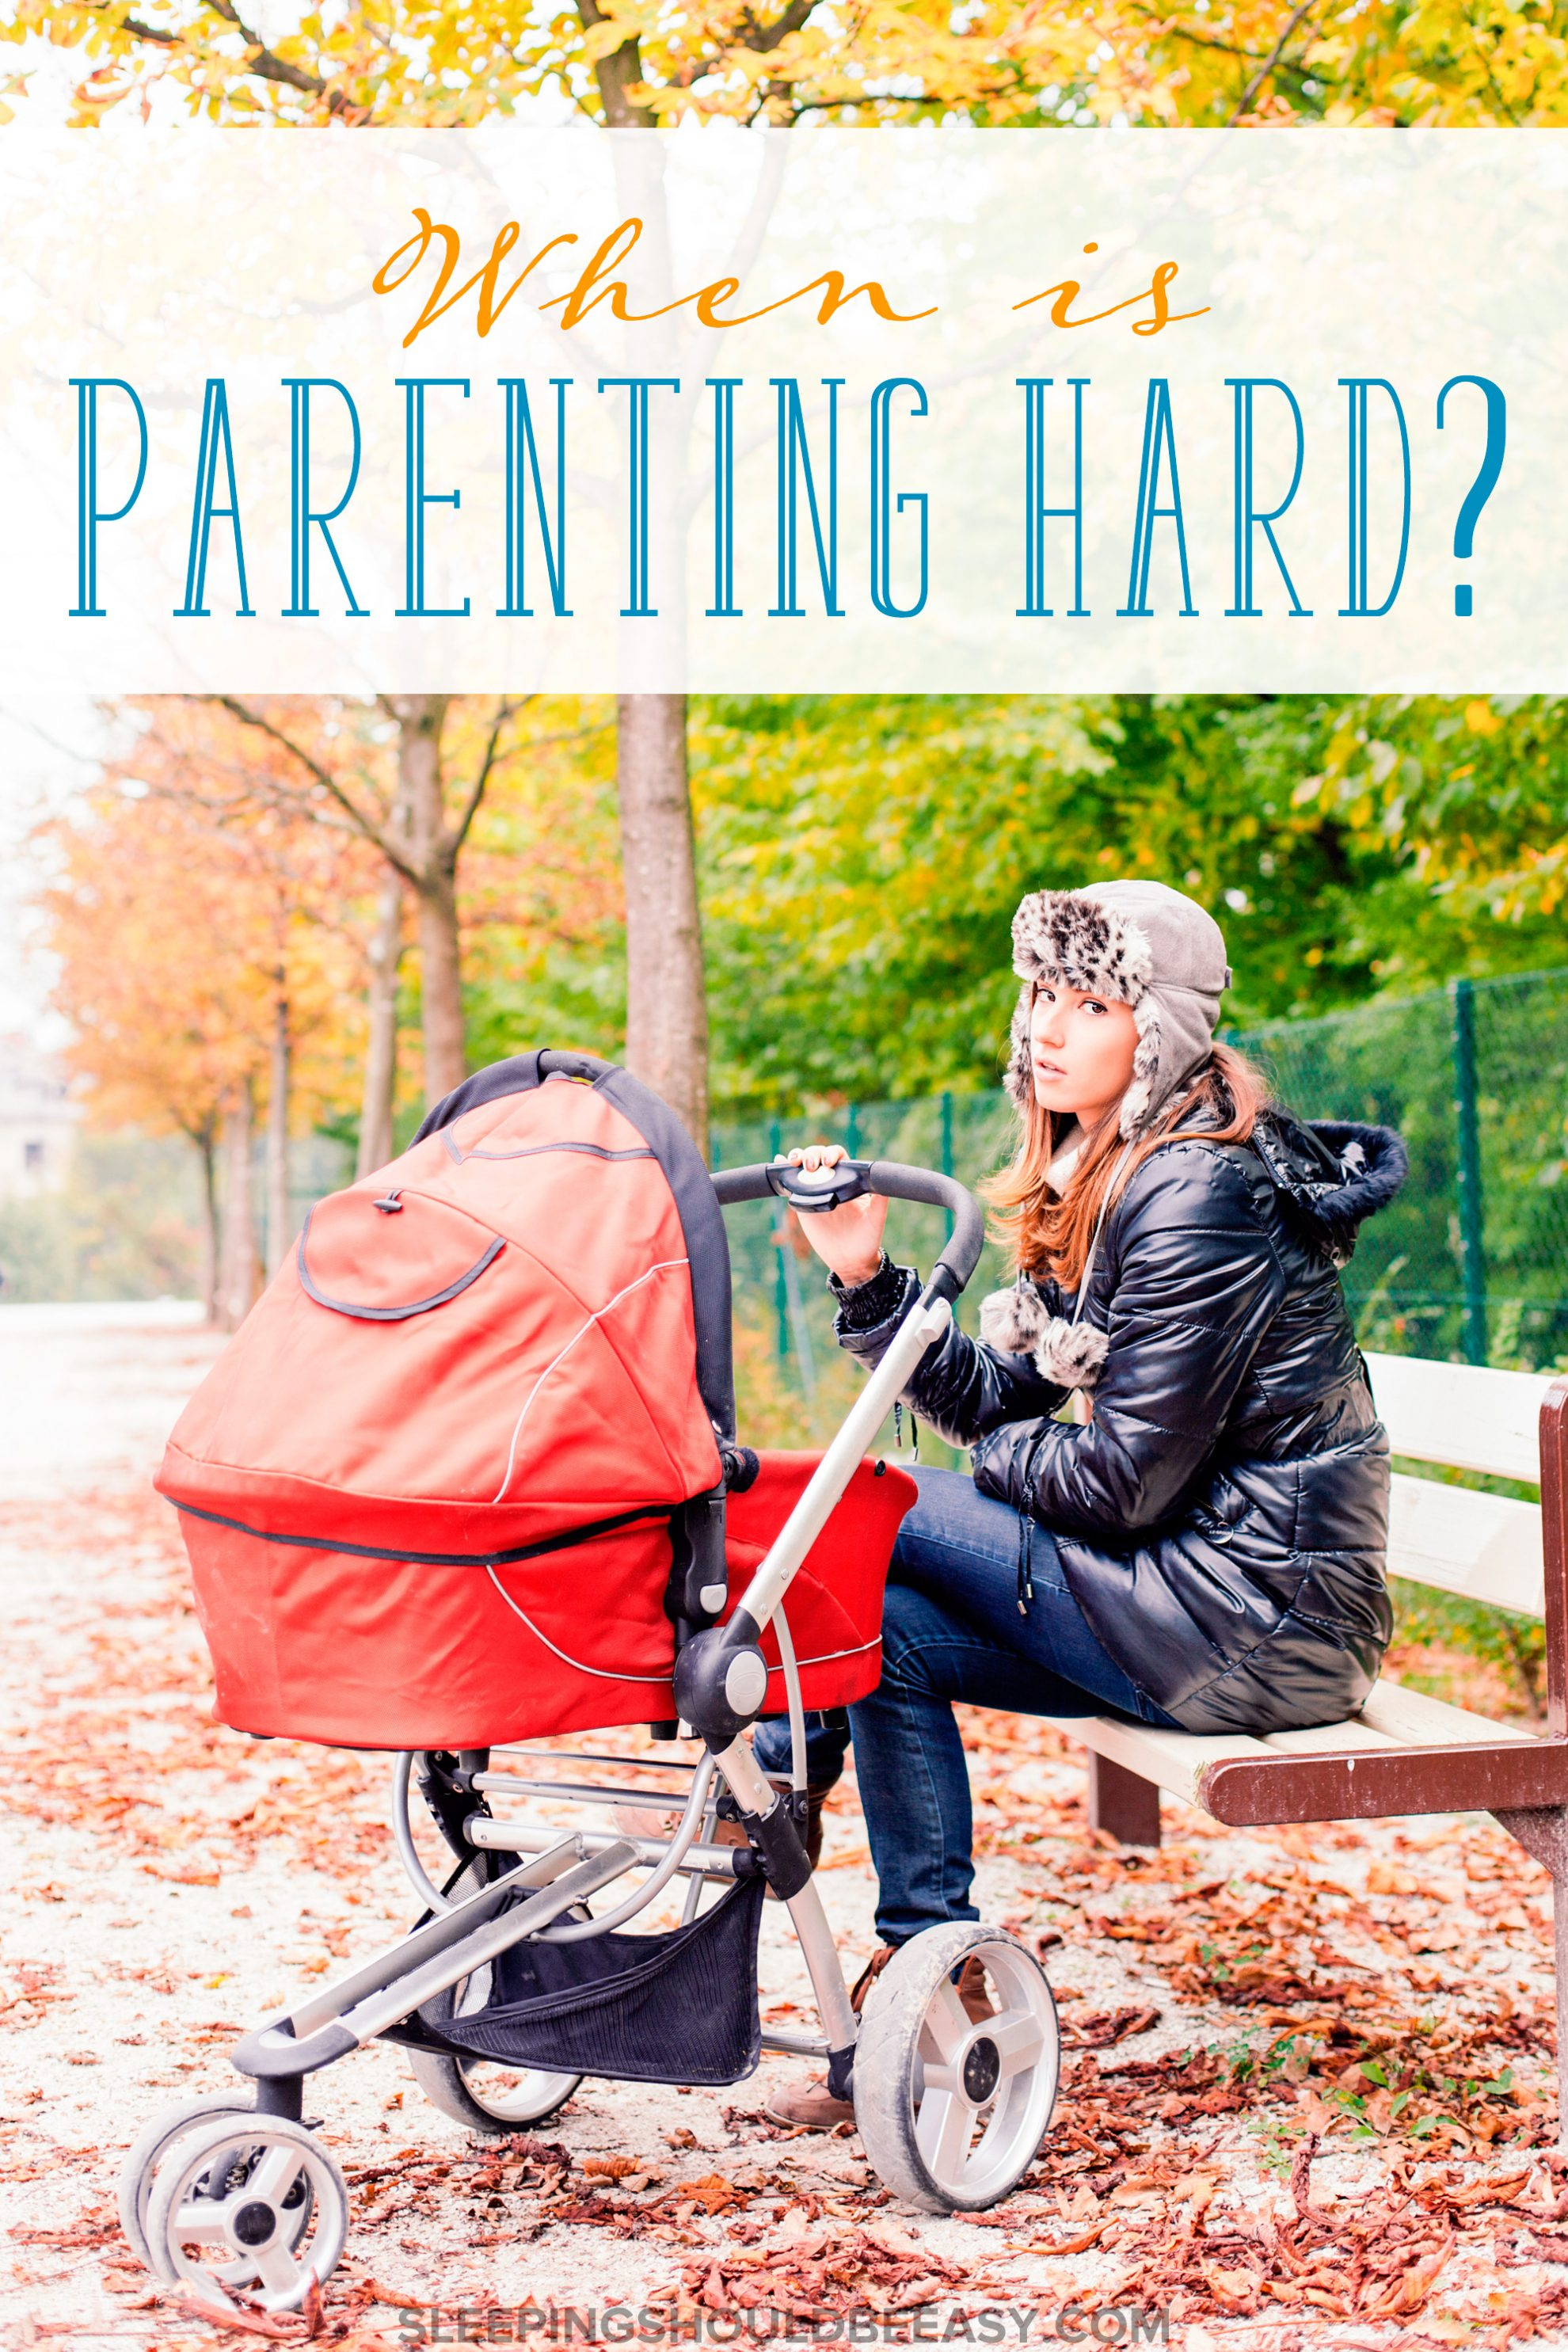 Different ages mean different challenge. For some, it's the newborn stage, others, it's the teen years. When is parenting hard for you?